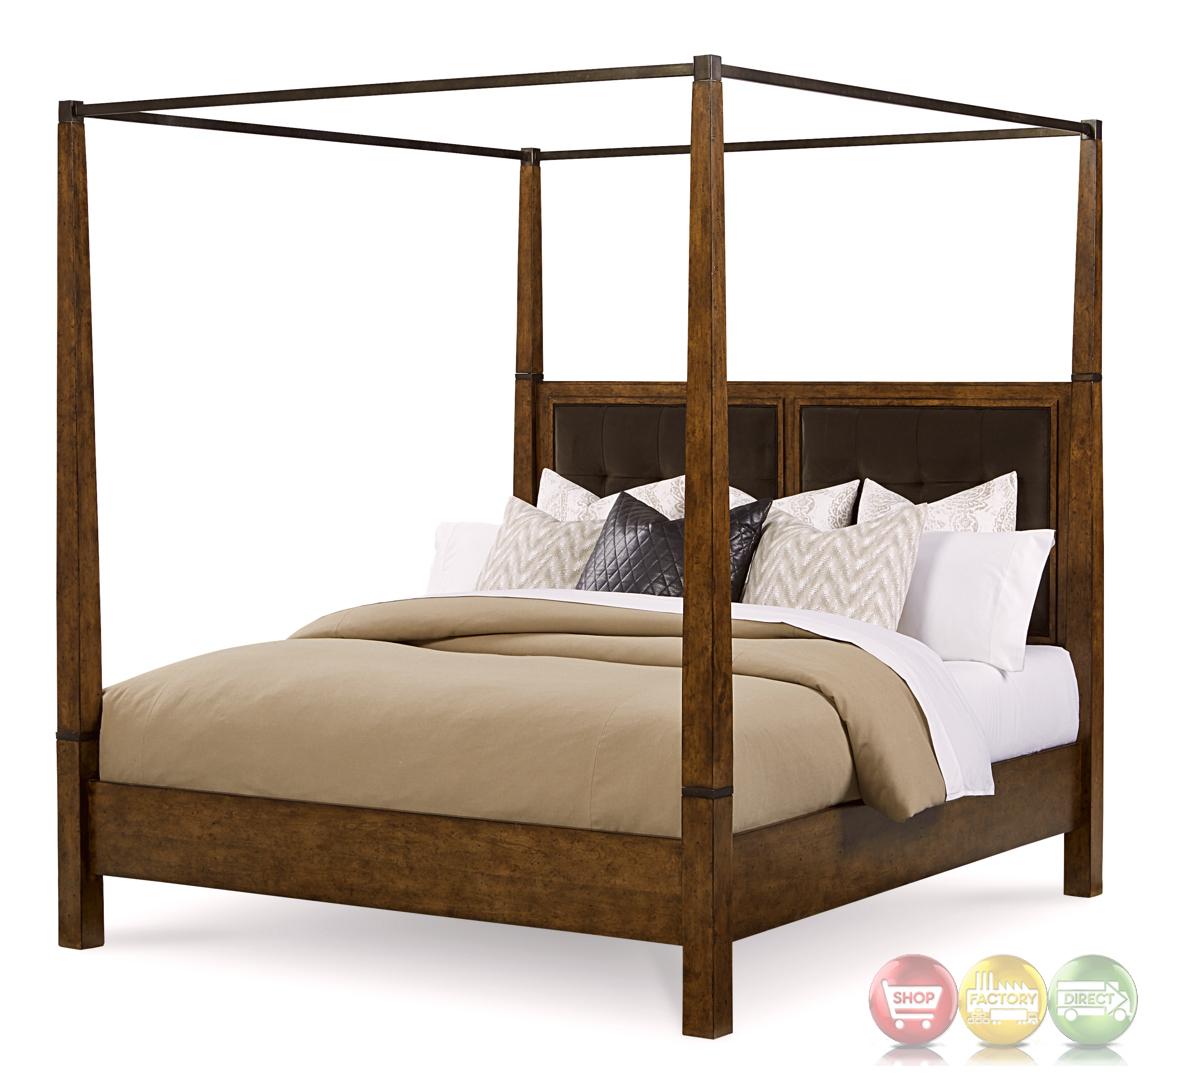 Echo park birch california king canopy bed with stipple California king beds